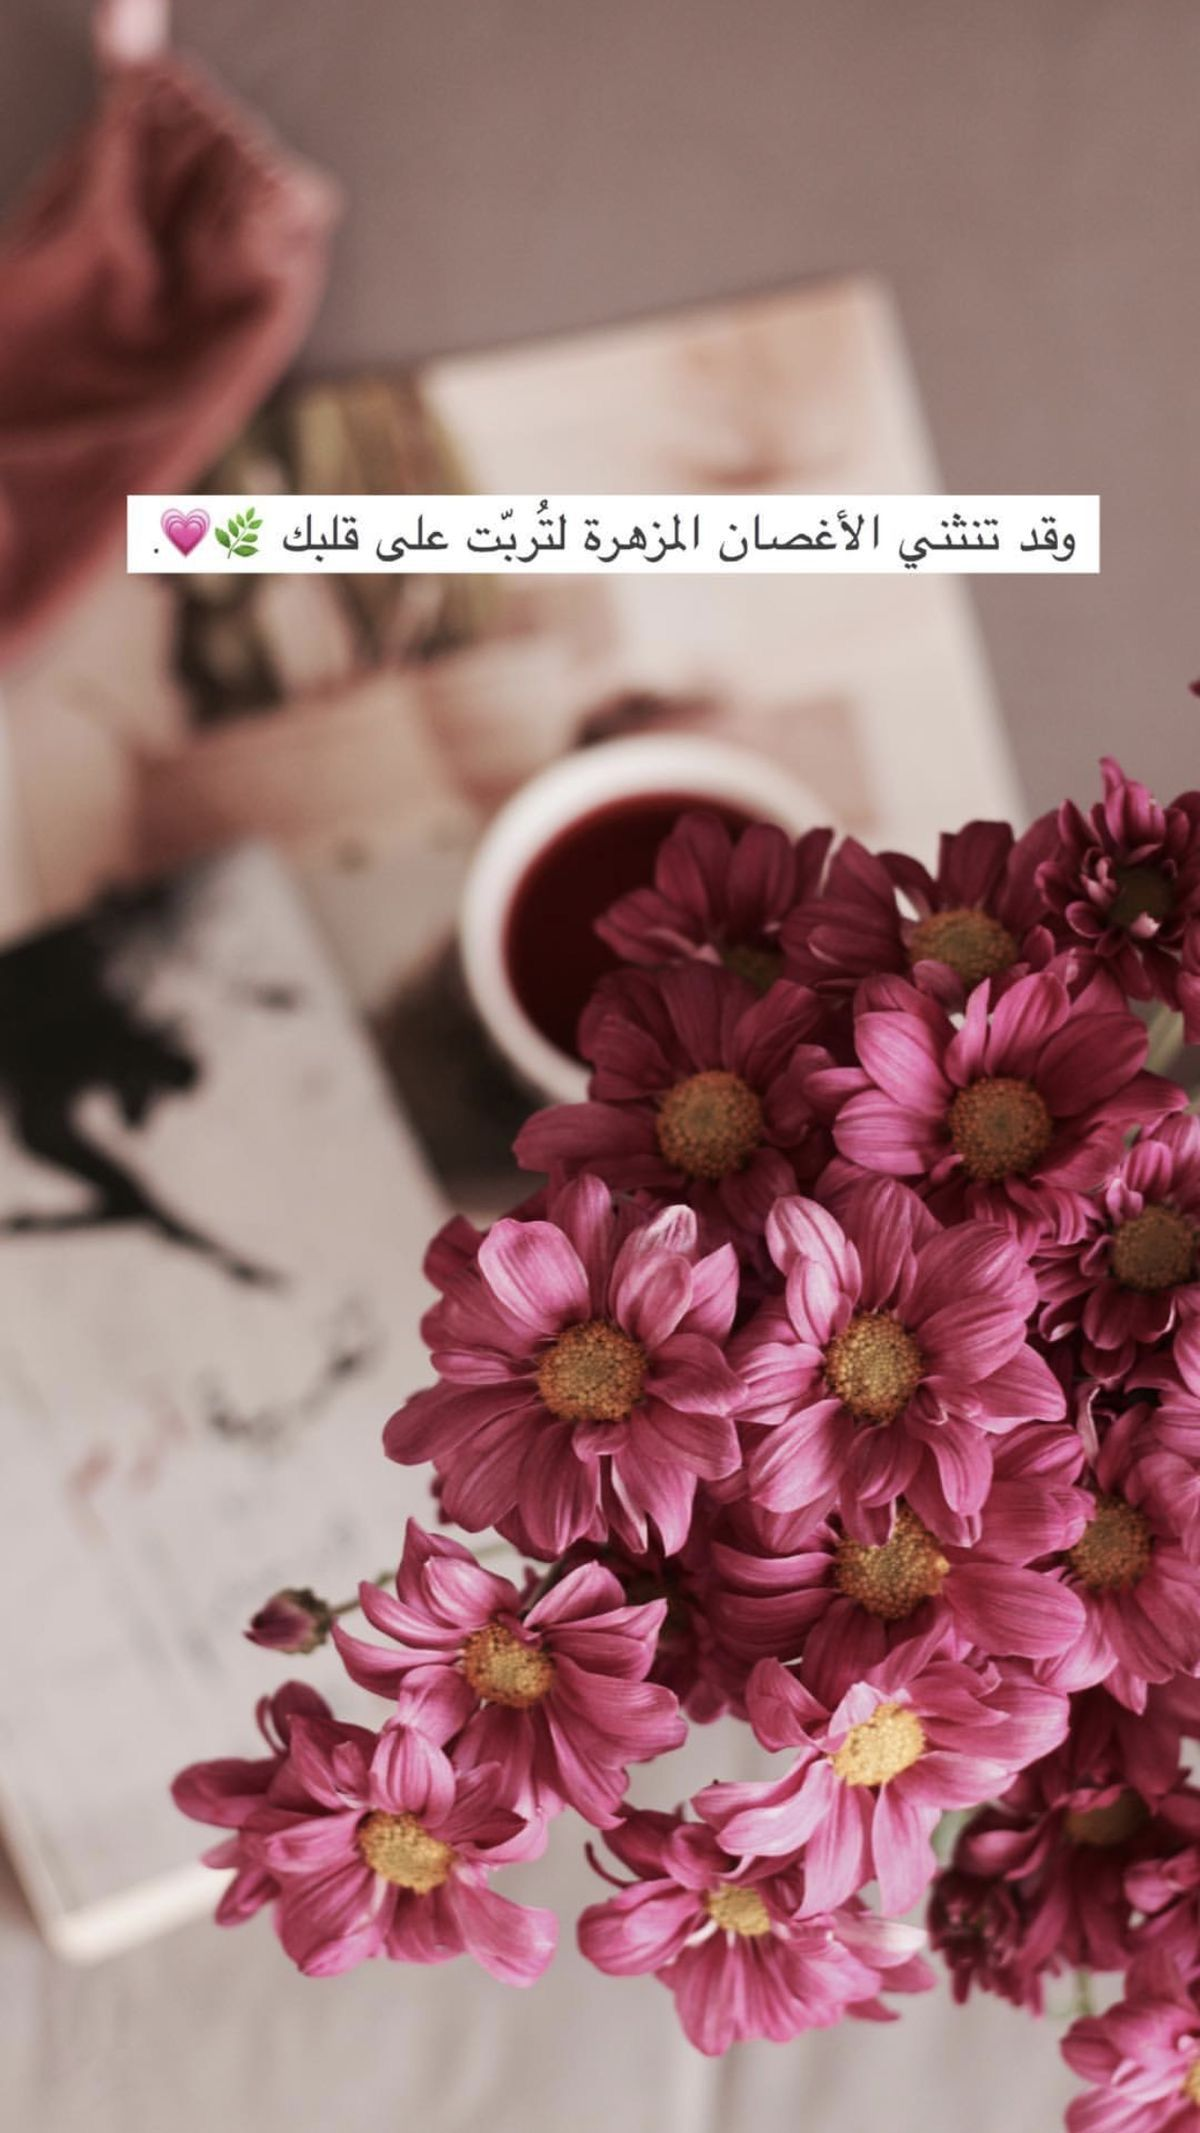 Pin By اوراق الخريف On كلمات Flower Background Iphone Arabic Quotes Beautiful Arabic Words